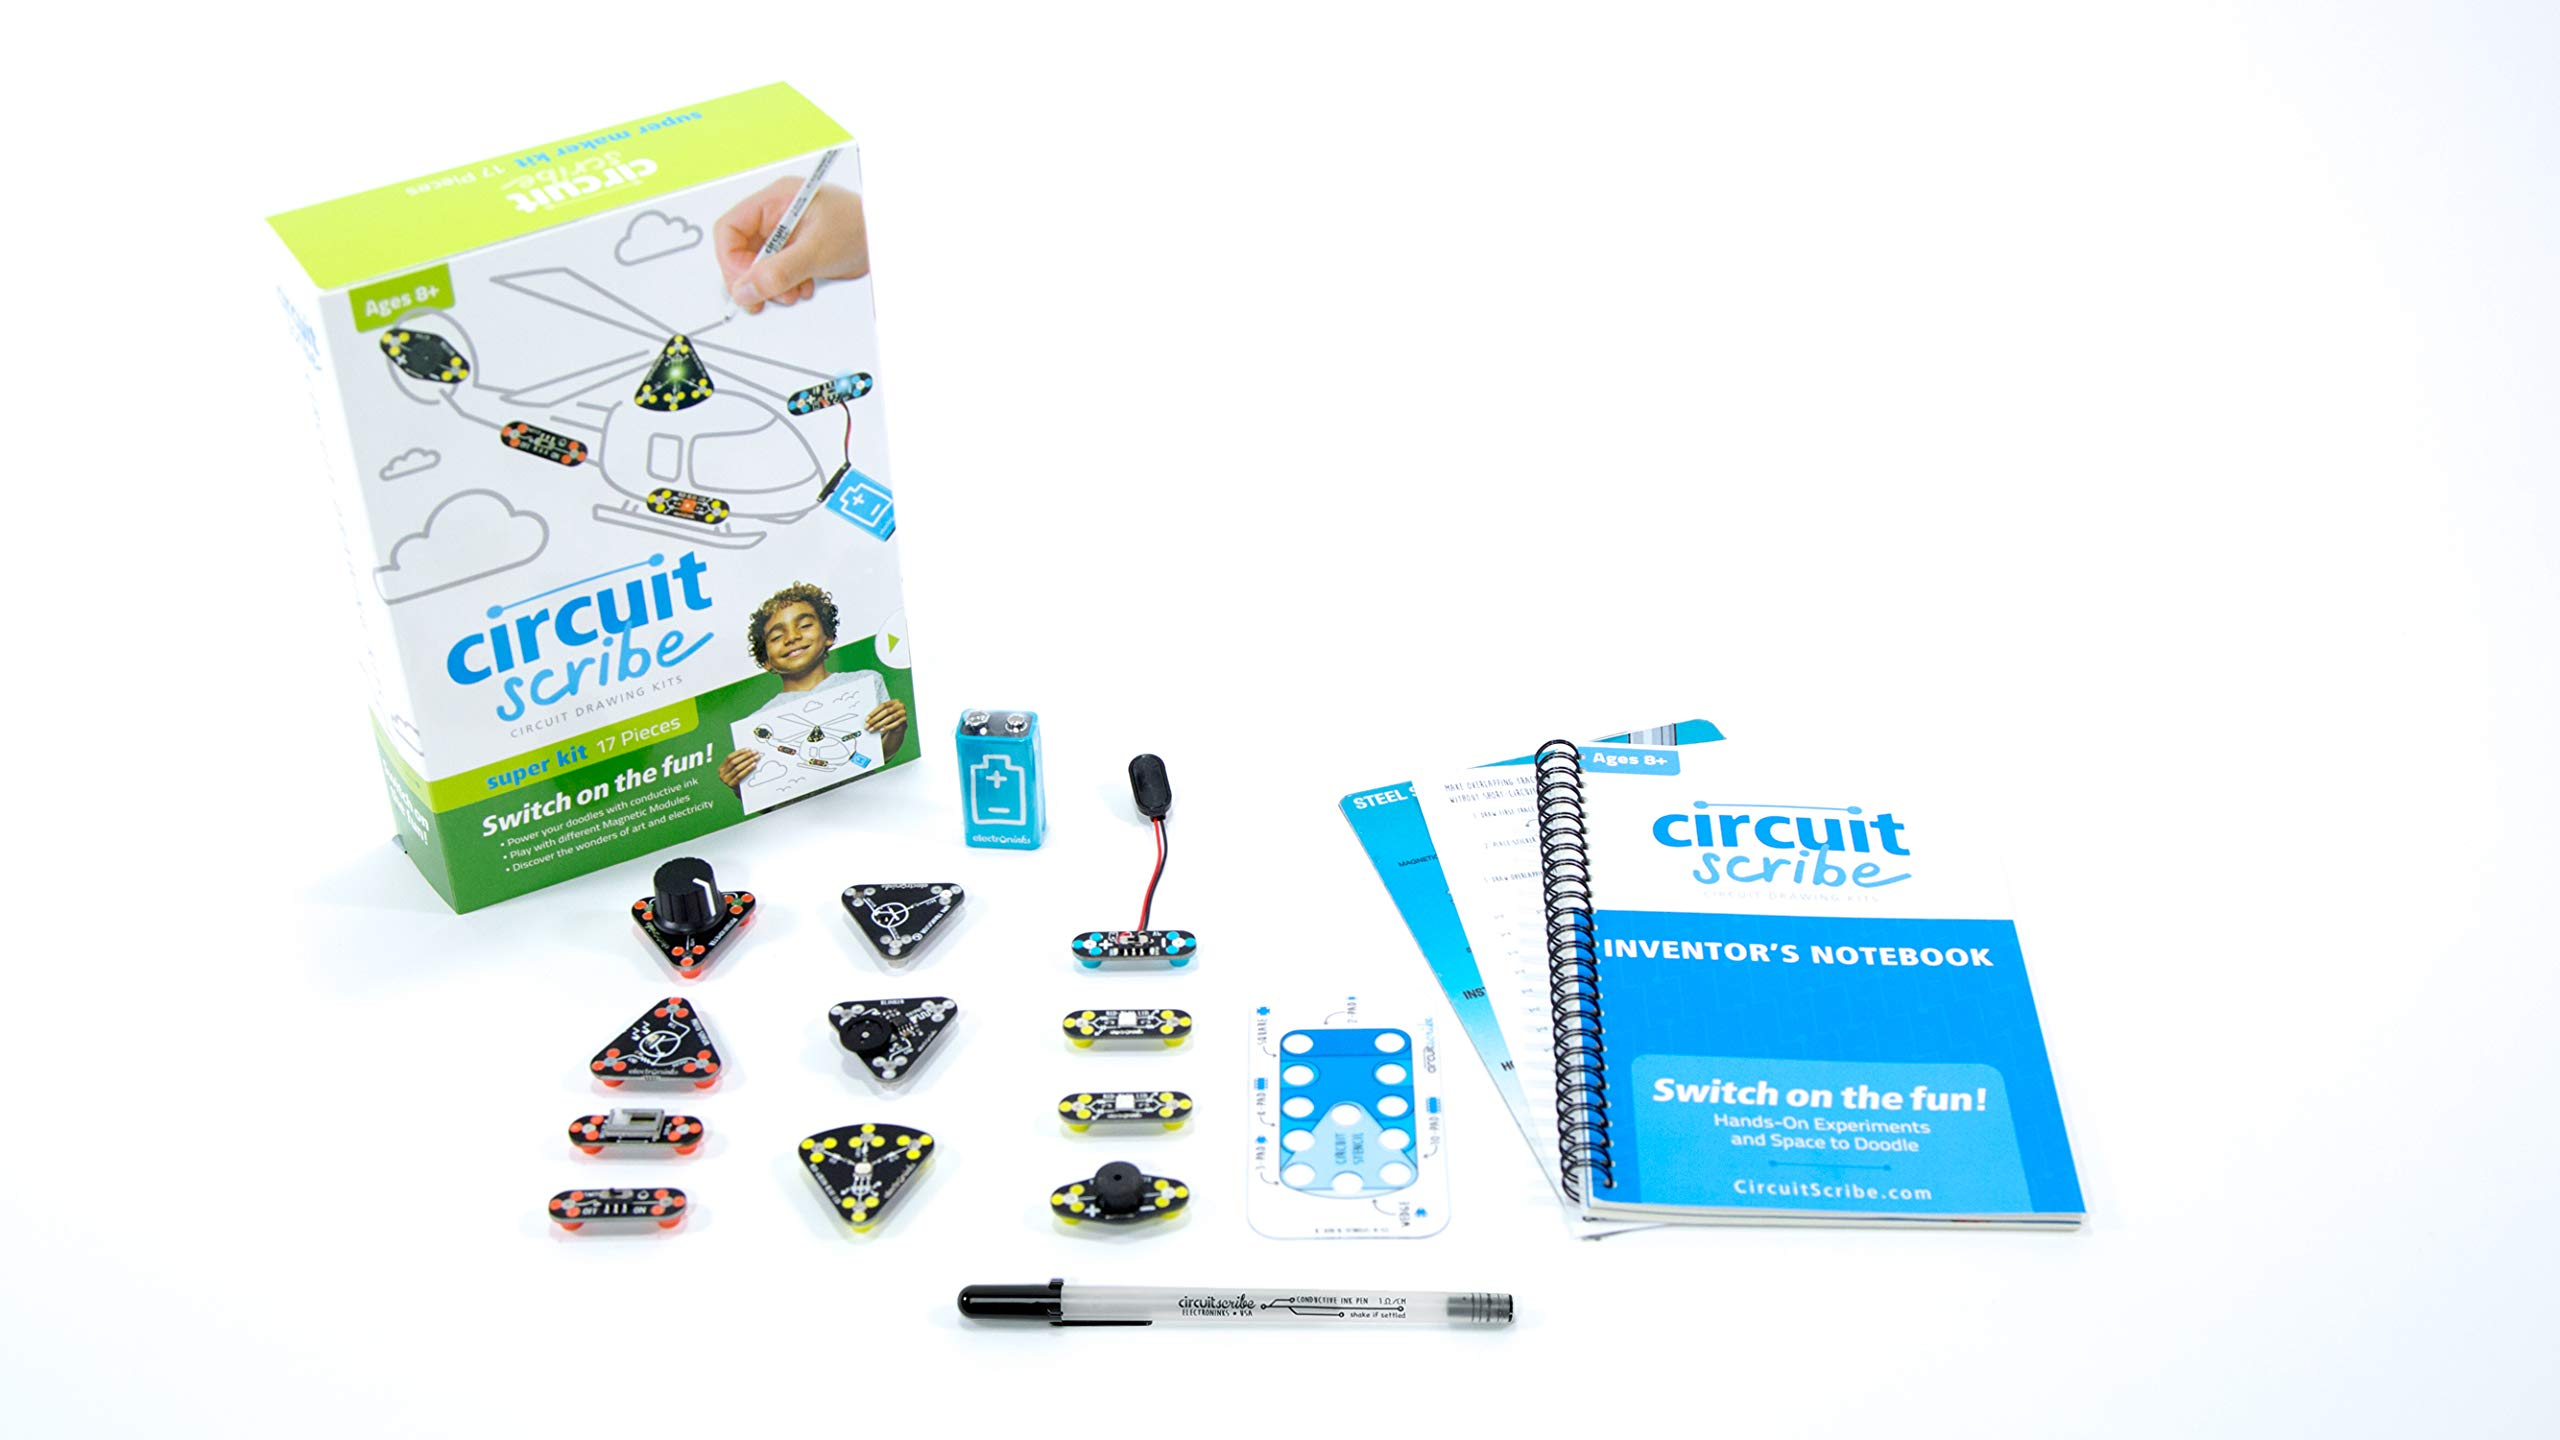 Circuit Scribe Super Kit: Draw Circuits Instantly – Includes Conductive Silver Ink Pen, and Everything You Need to Learn, Explore, and Create Your Own Circuits and Switches!